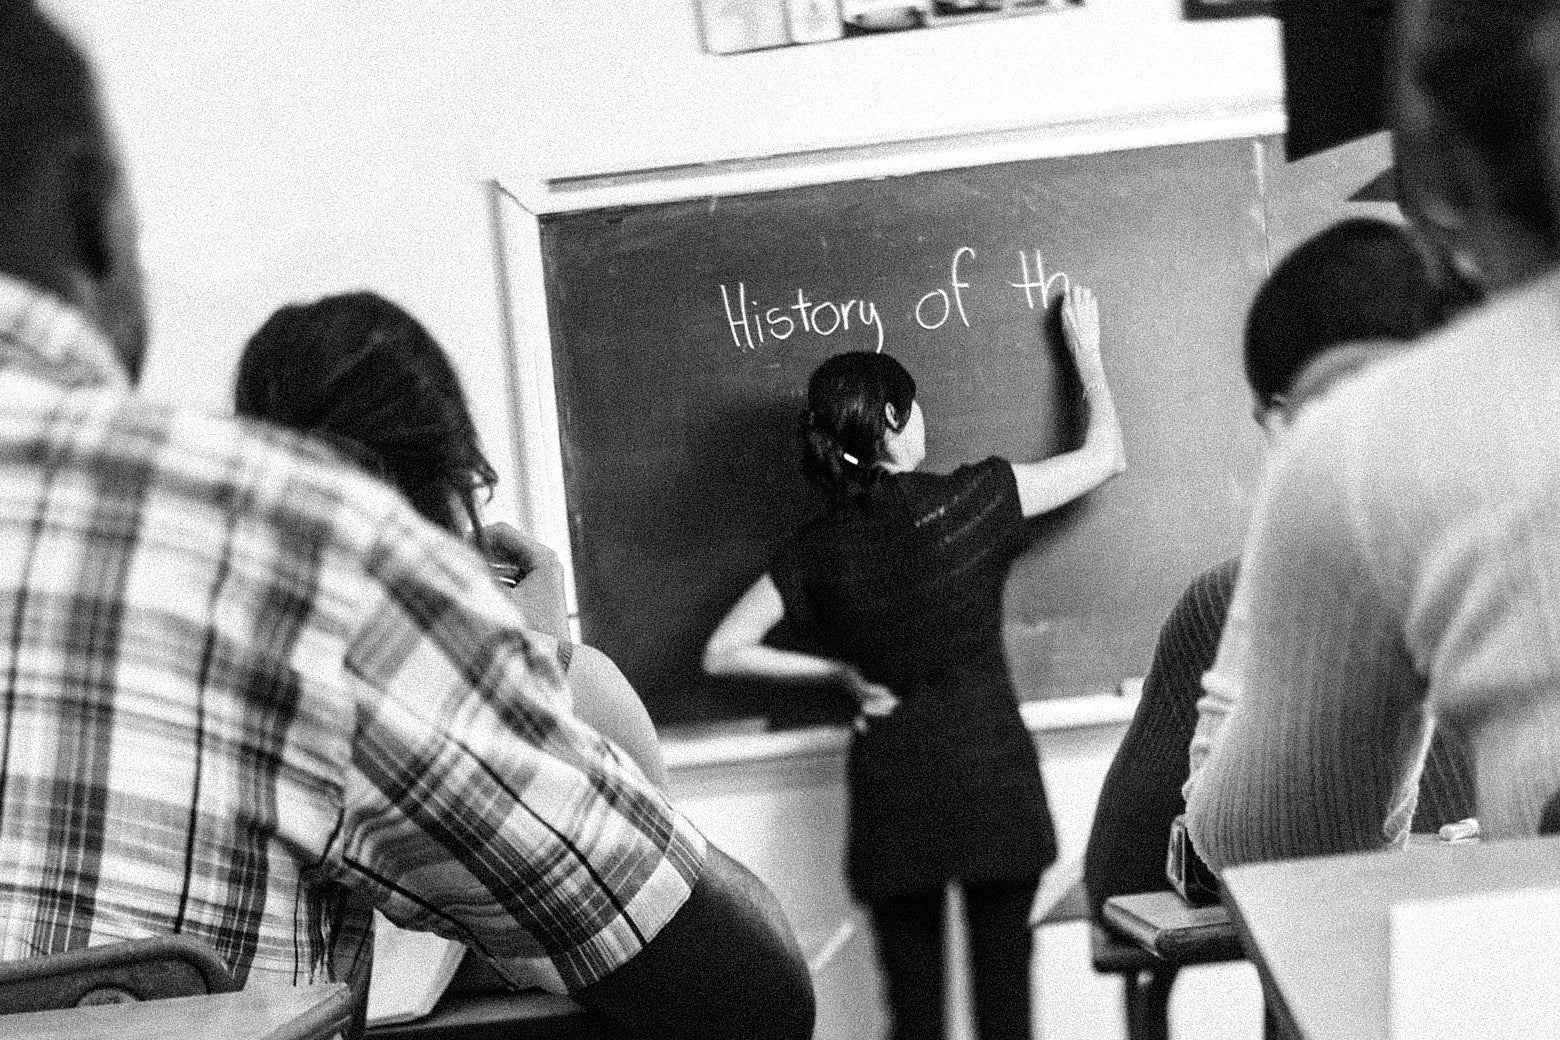 slate.com - Rebecca Onion - Classroom Historical Role-Playing Games Can Easily Go Wrong. So Why Do Teachers Keep Assigning Them?